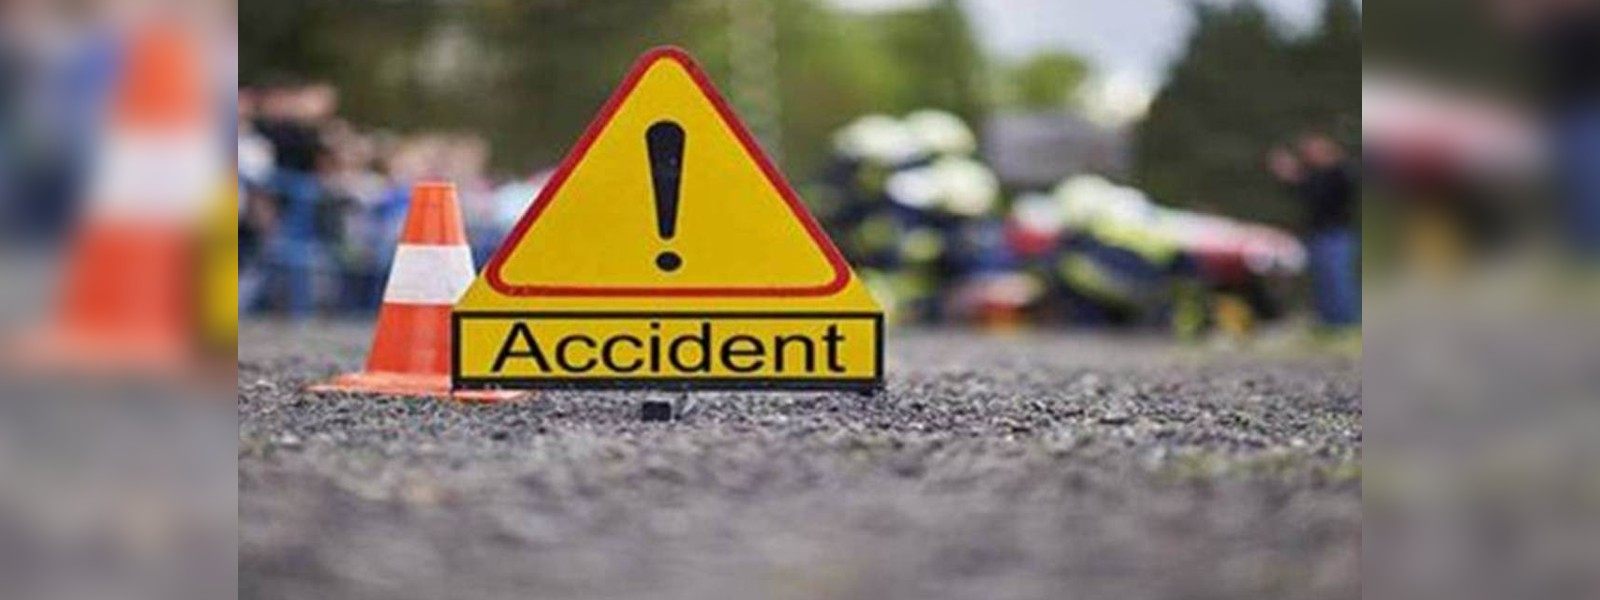 13 deaths caused by fatal accidents